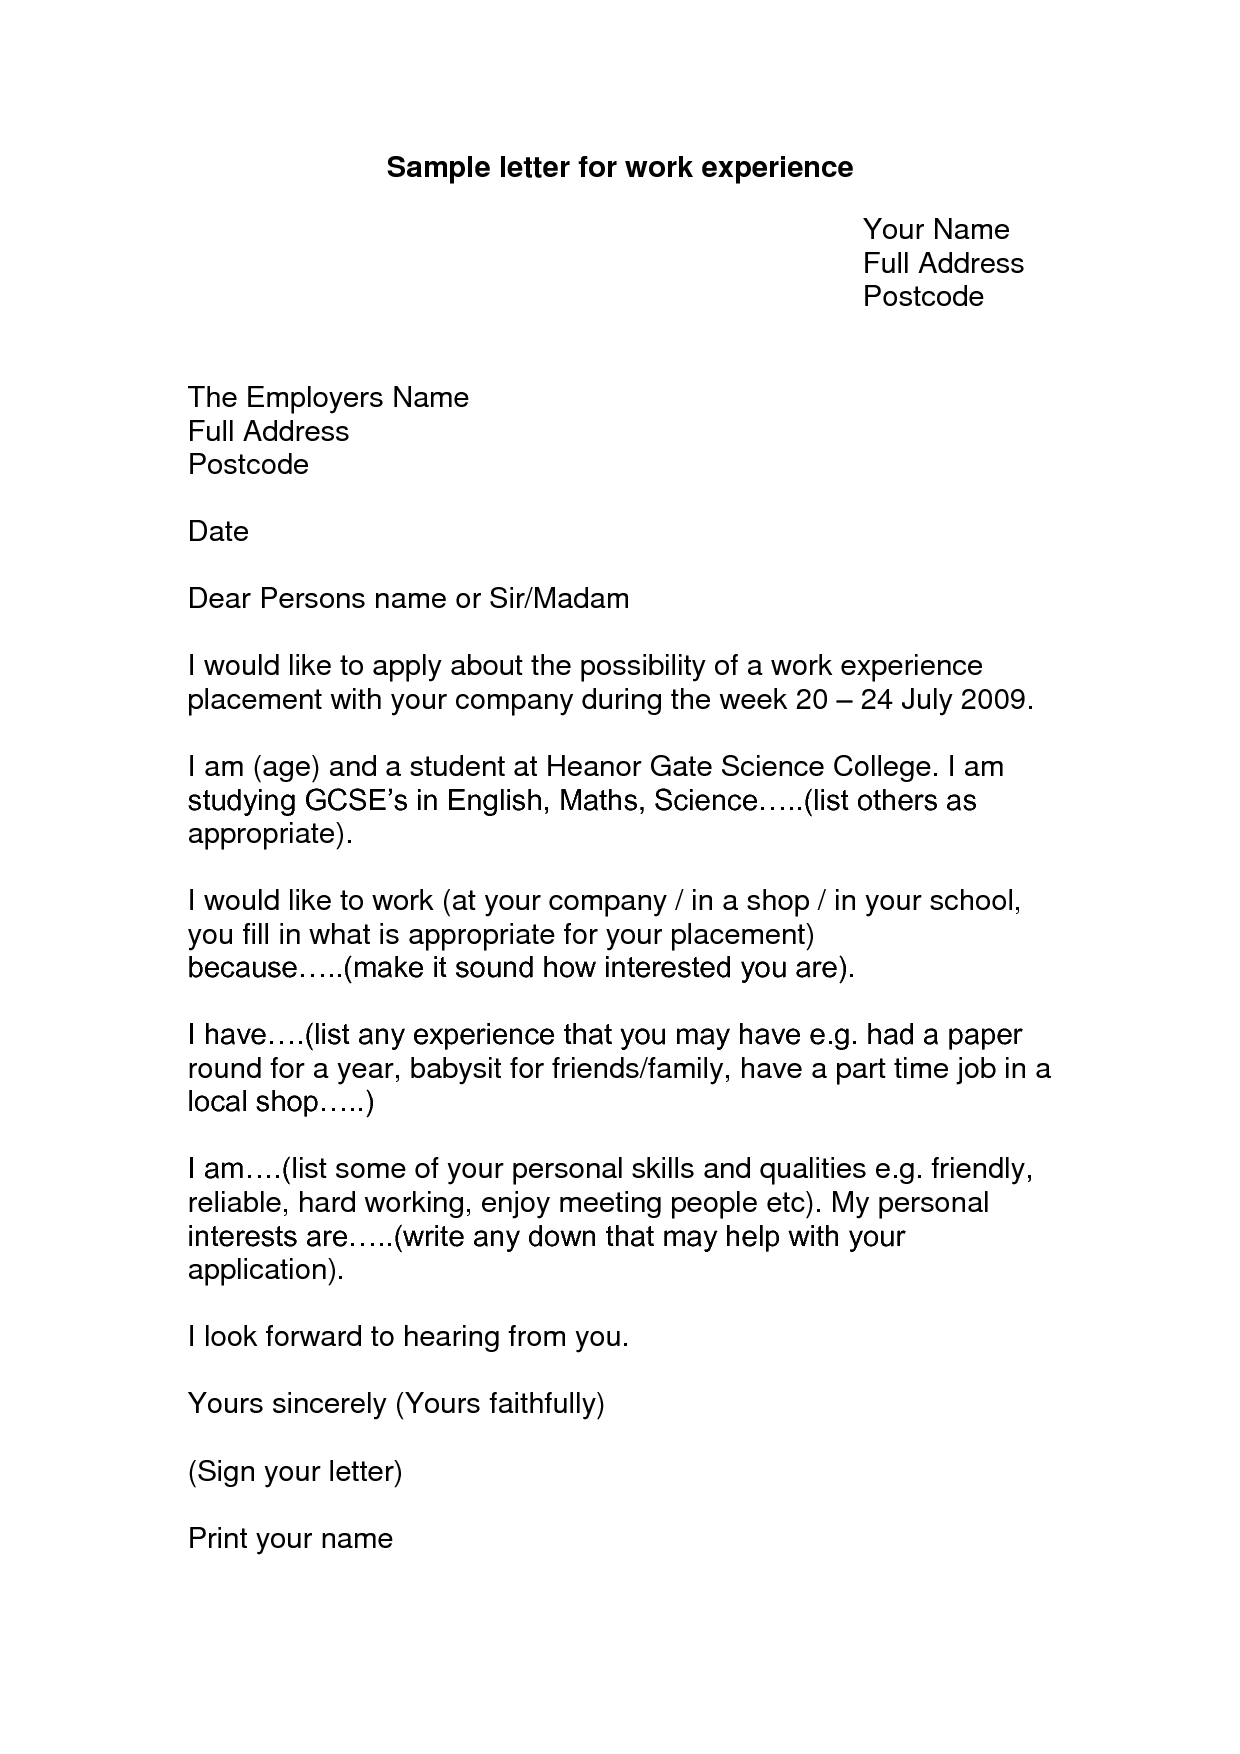 how to write a work experience application